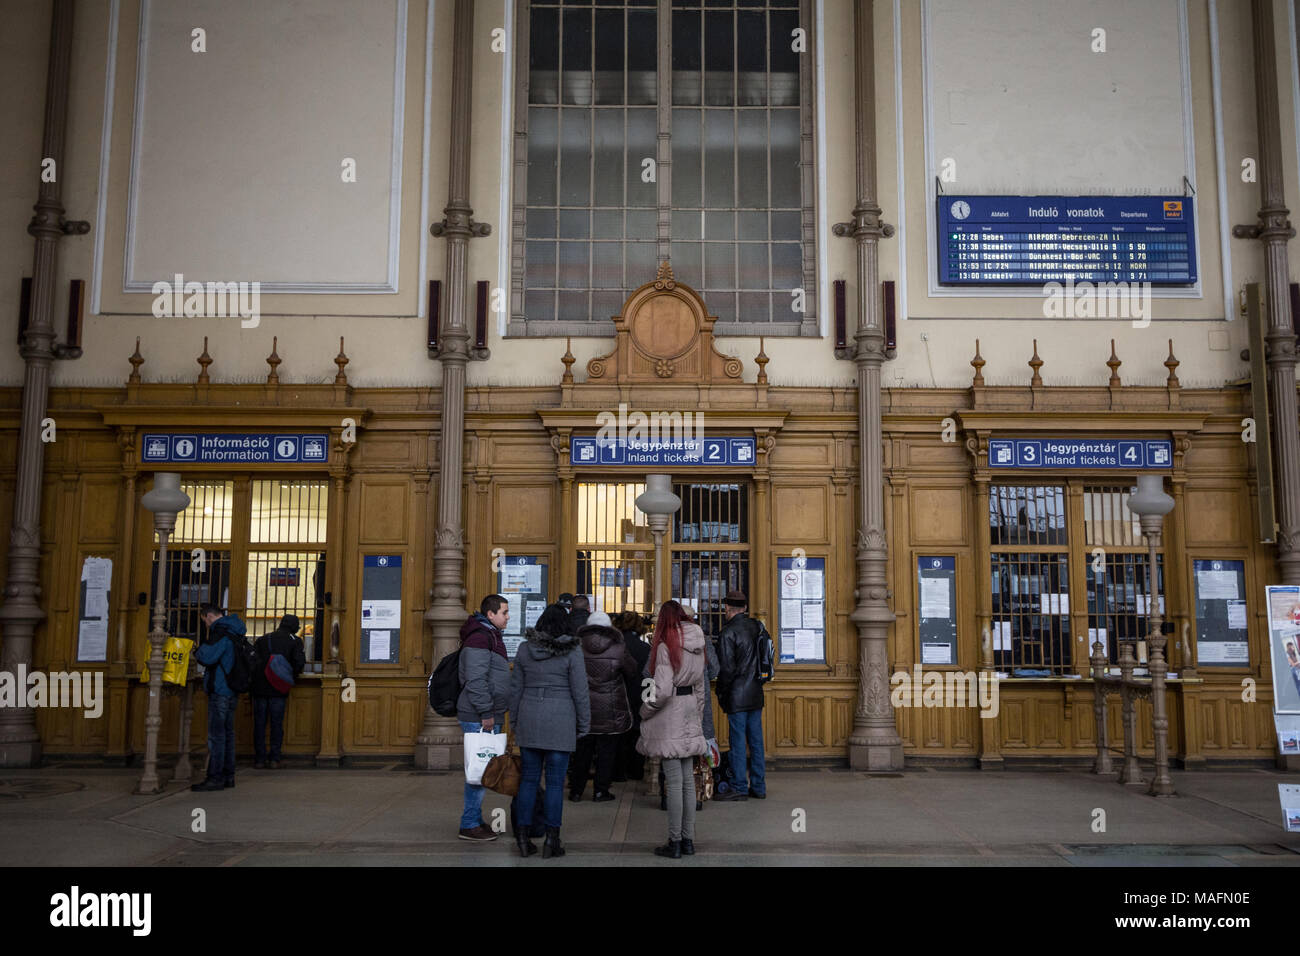 BUDAPEST, HUNGARY - DECEMBER 18, 2016: People queuing and waiting in front of ticket counters in Nyugati Palyaudvar train station to buy train tickets - Stock Image